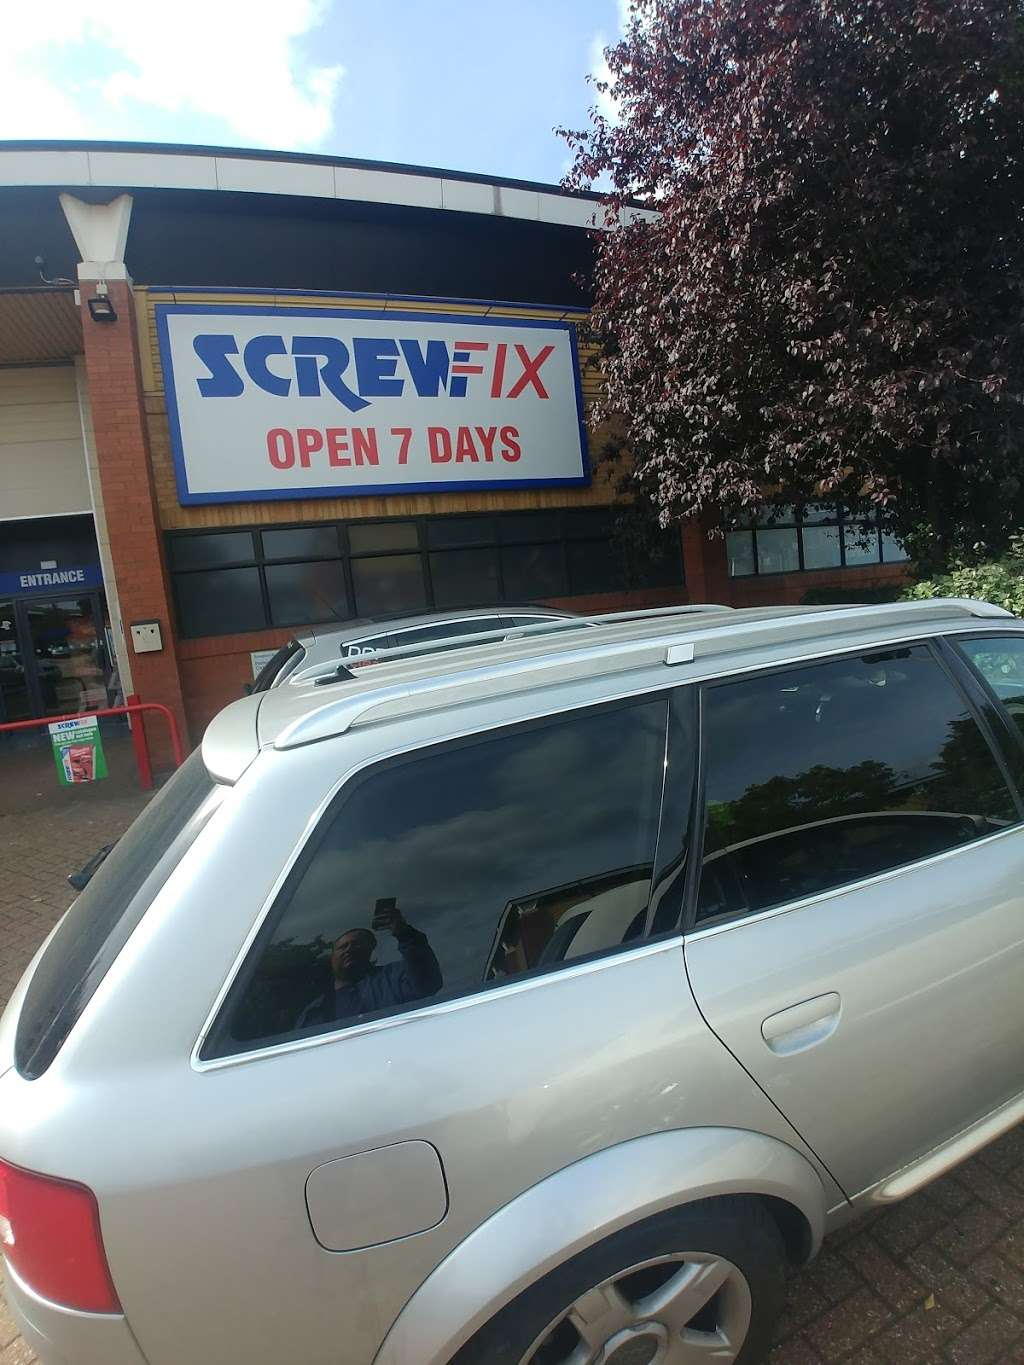 Screwfix - store  | Photo 2 of 5 | Address: Prospect Business Park, Loughton IG10 3TR, UK | Phone: 0333 011 2112